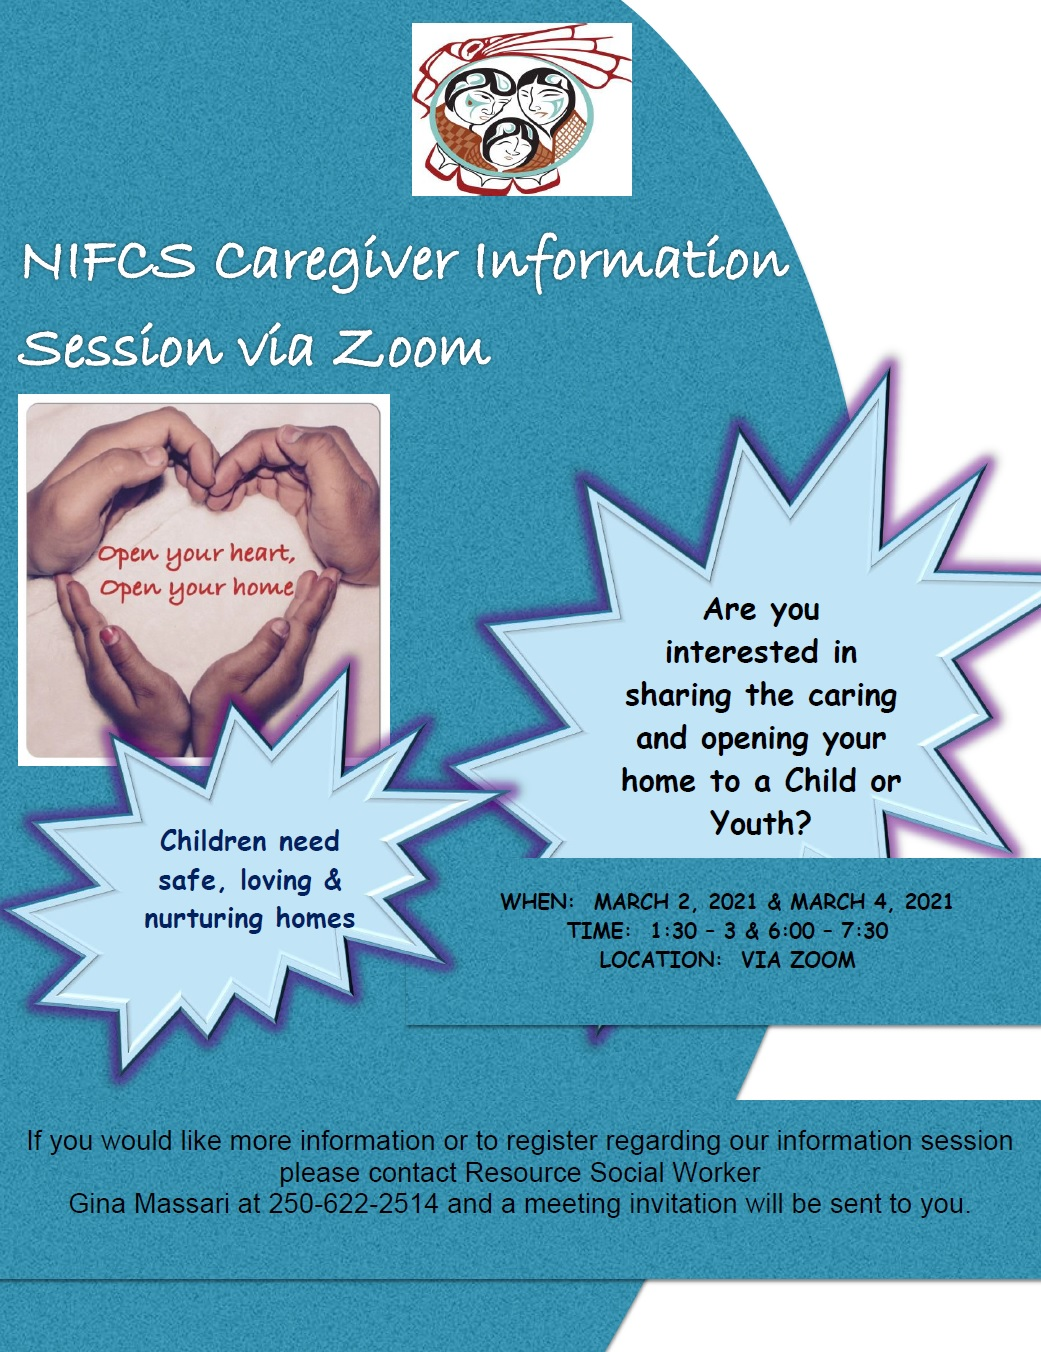 NIFCS Caregiver Information Session on ZOOM March 2 and 4